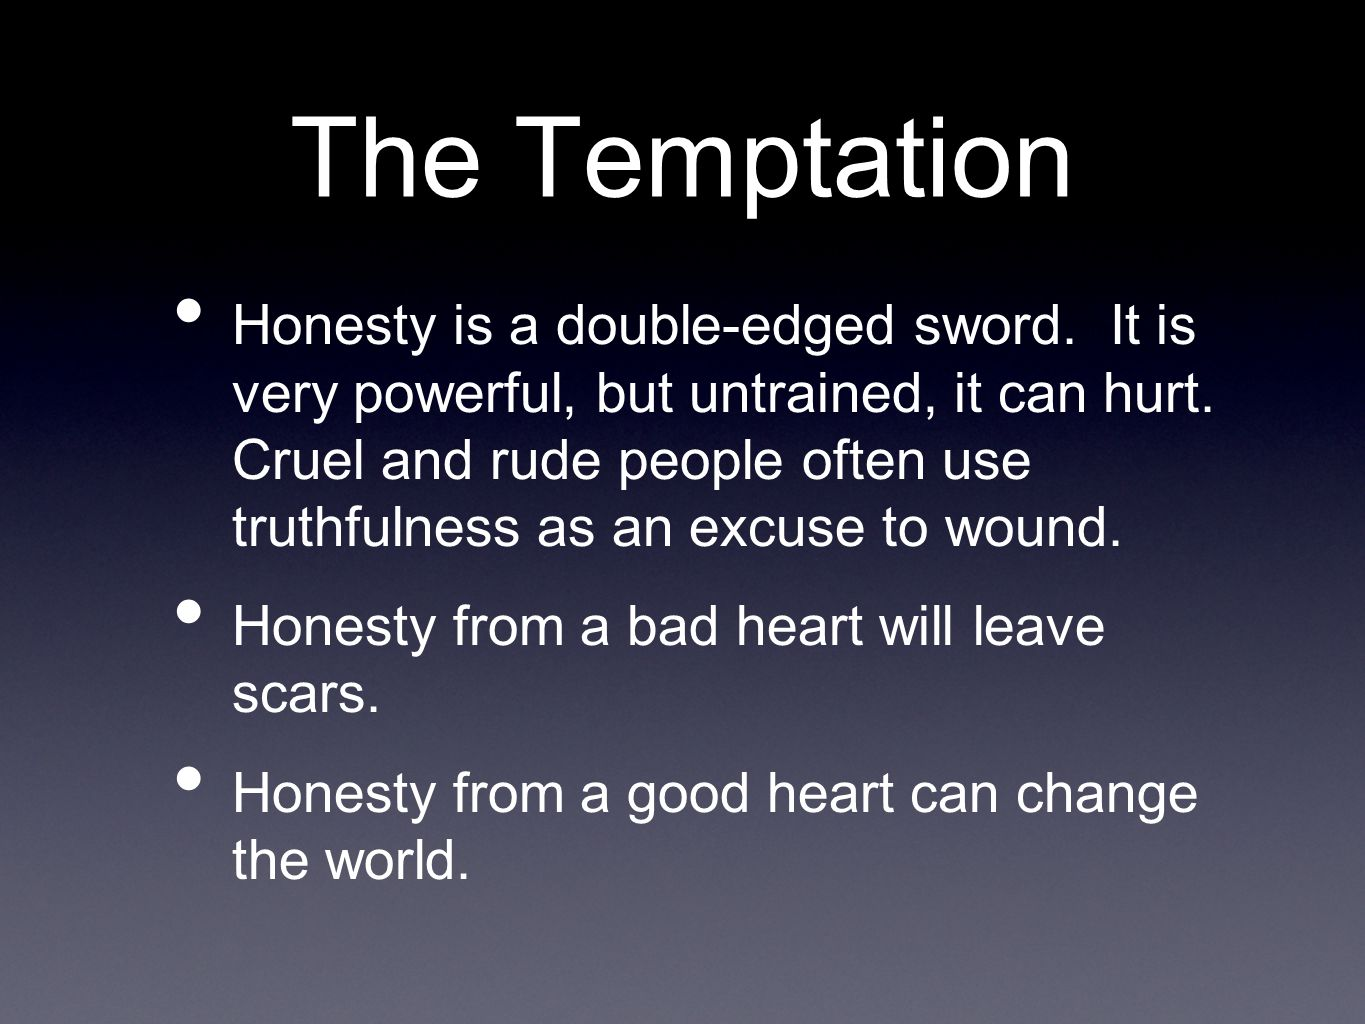 The Temptation Honesty is a double-edged sword. It is very powerful, but untrained, it can hurt.